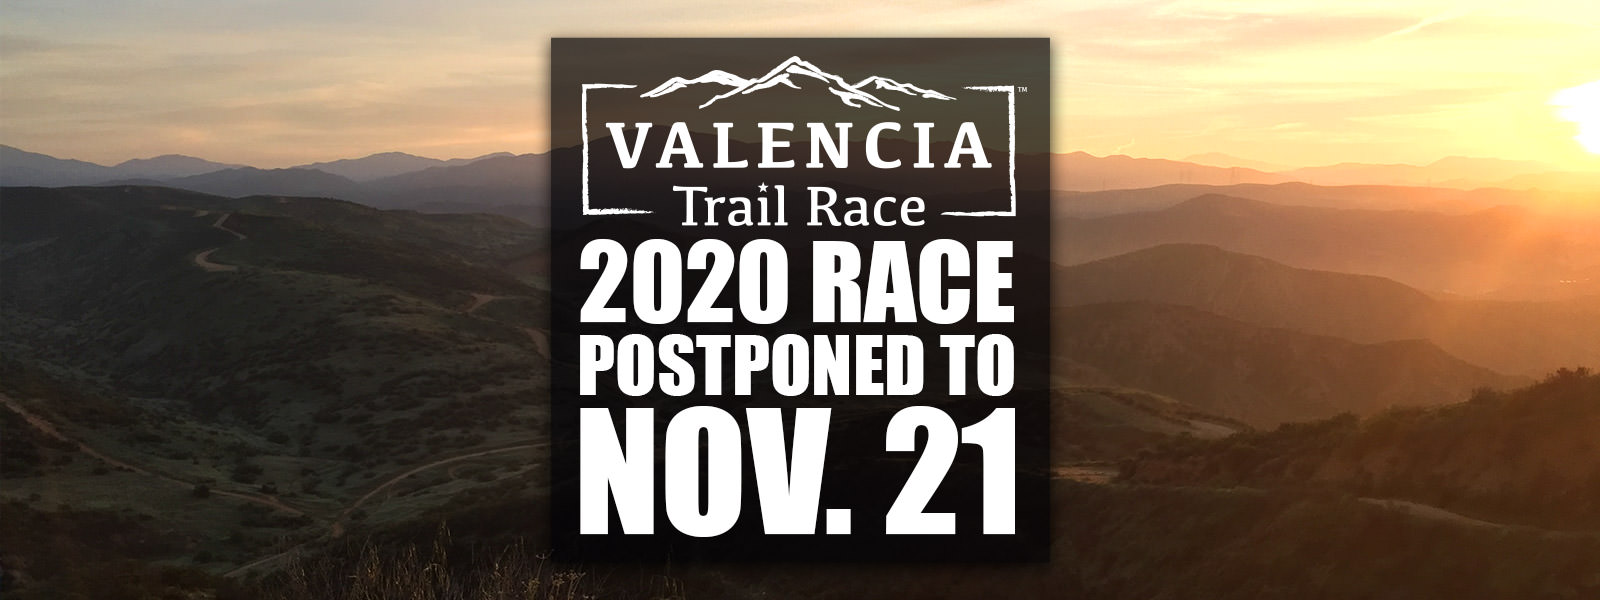 Postponed to Nov. 21